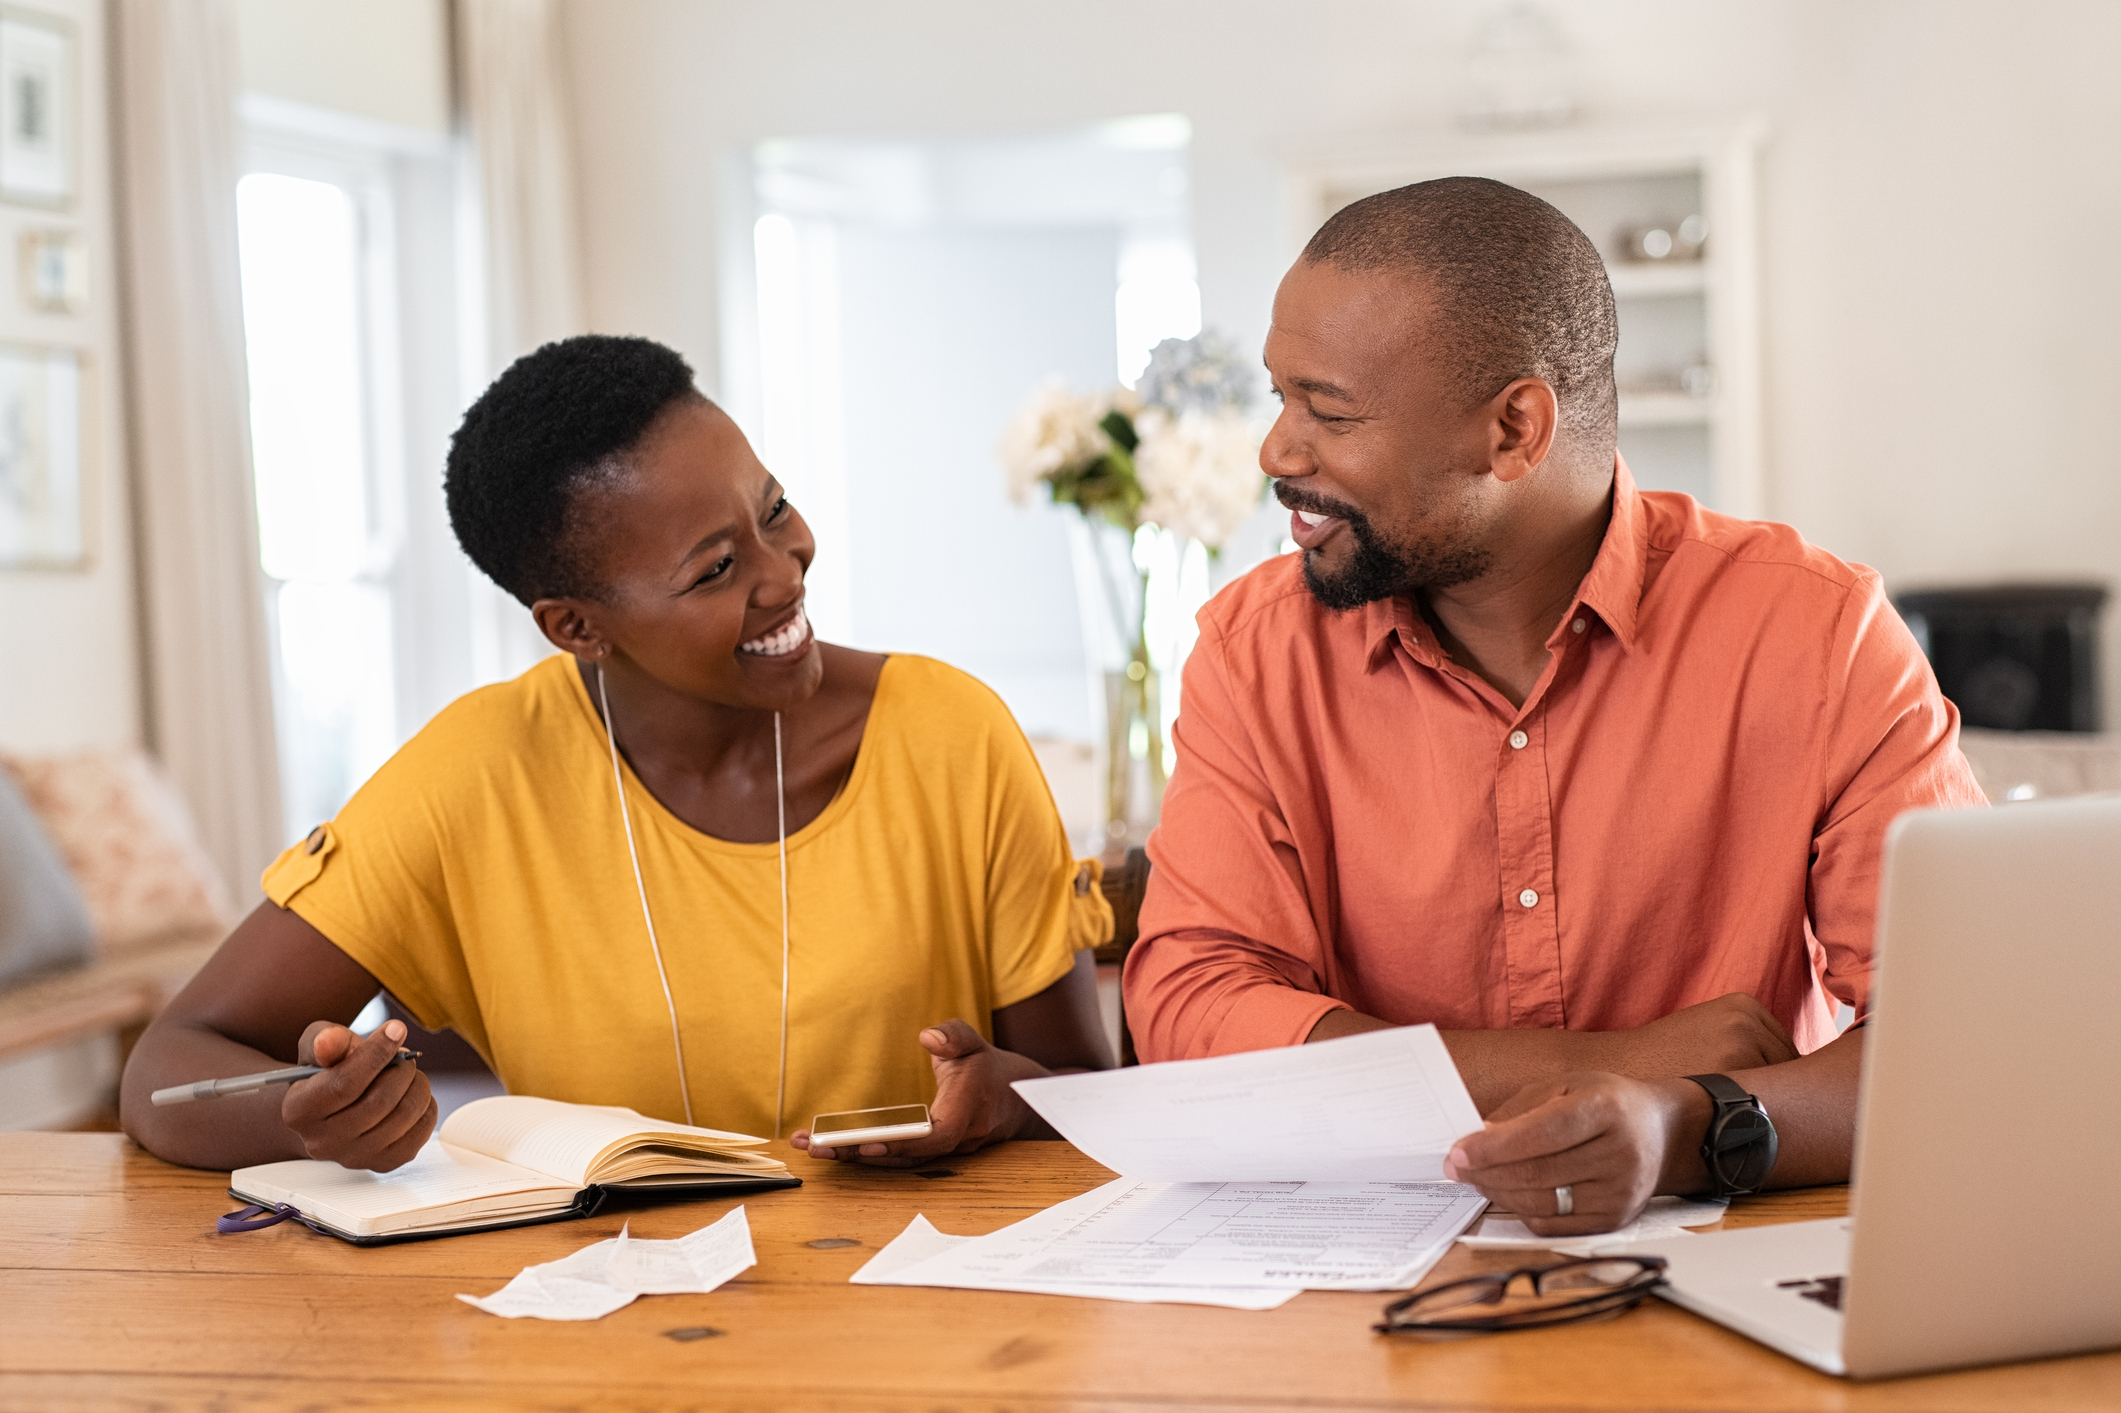 Husband and wife looking at finances. Image credit: iStock